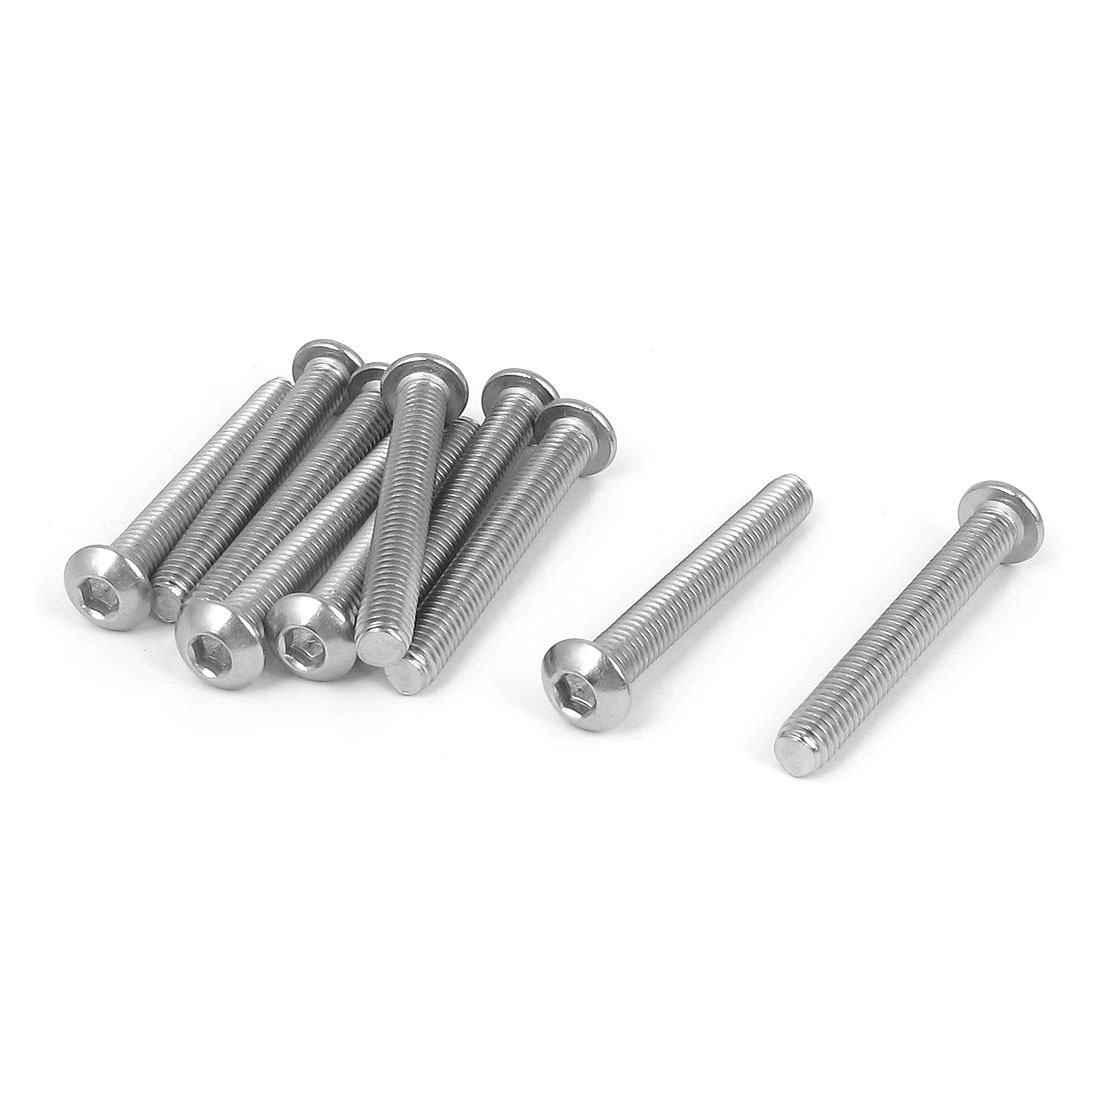 M6x45mm 304 Stainless Steel Hex Socket Machine Countersunk Round Head Screw Bolts 10PCS